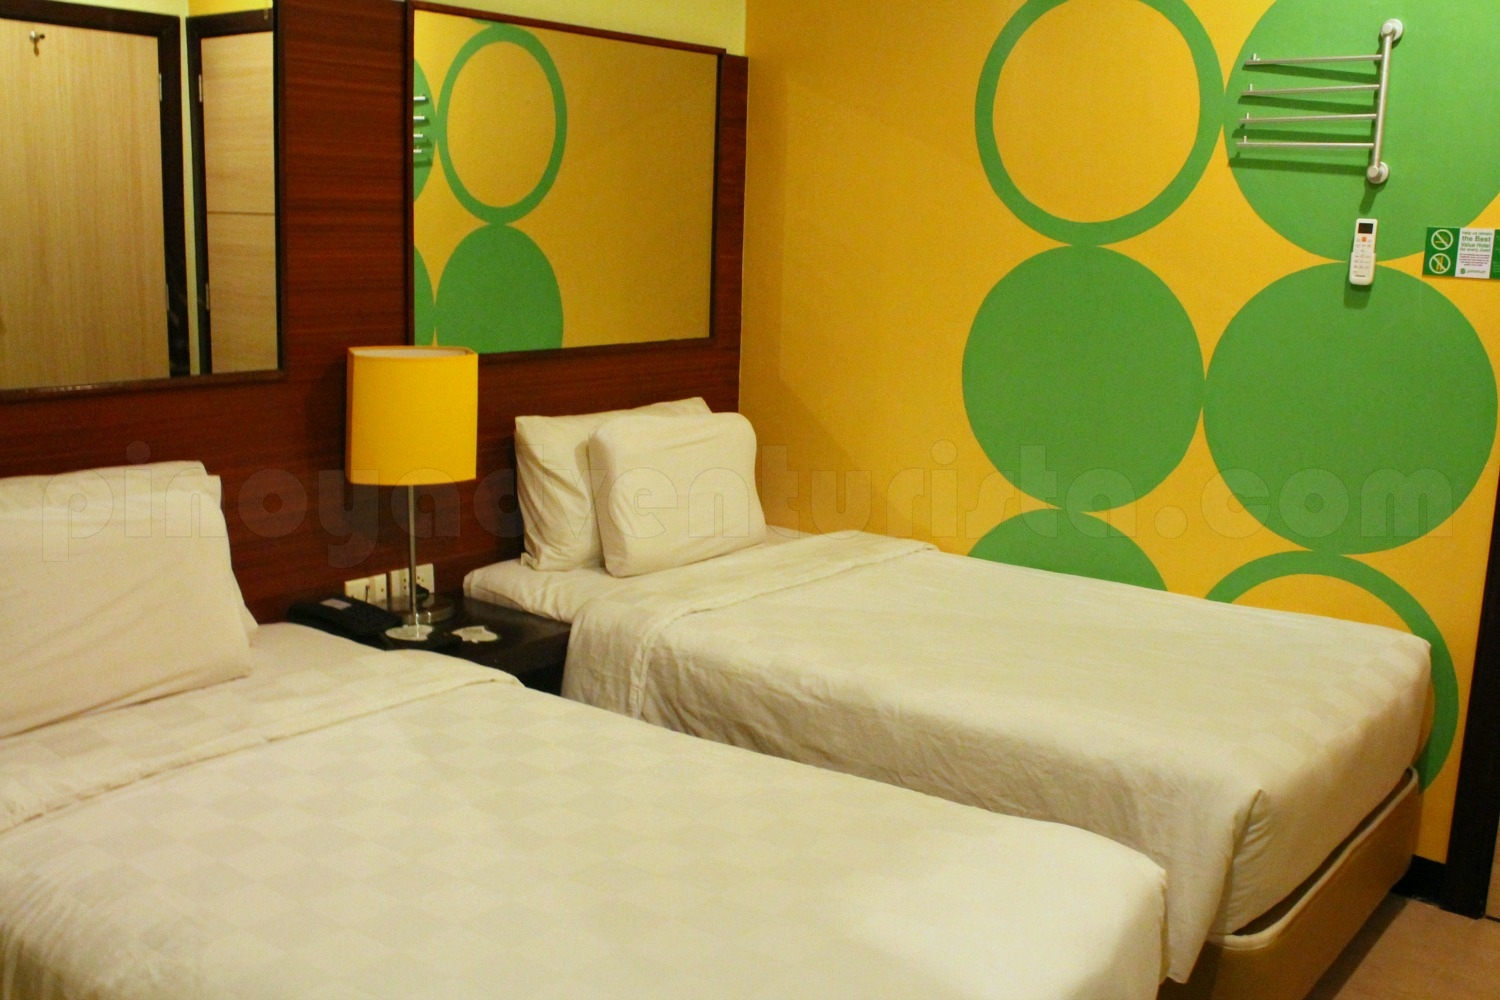 Hotels in tacloban go hotels tacloban a decent and for Hotel pillows for sale philippines